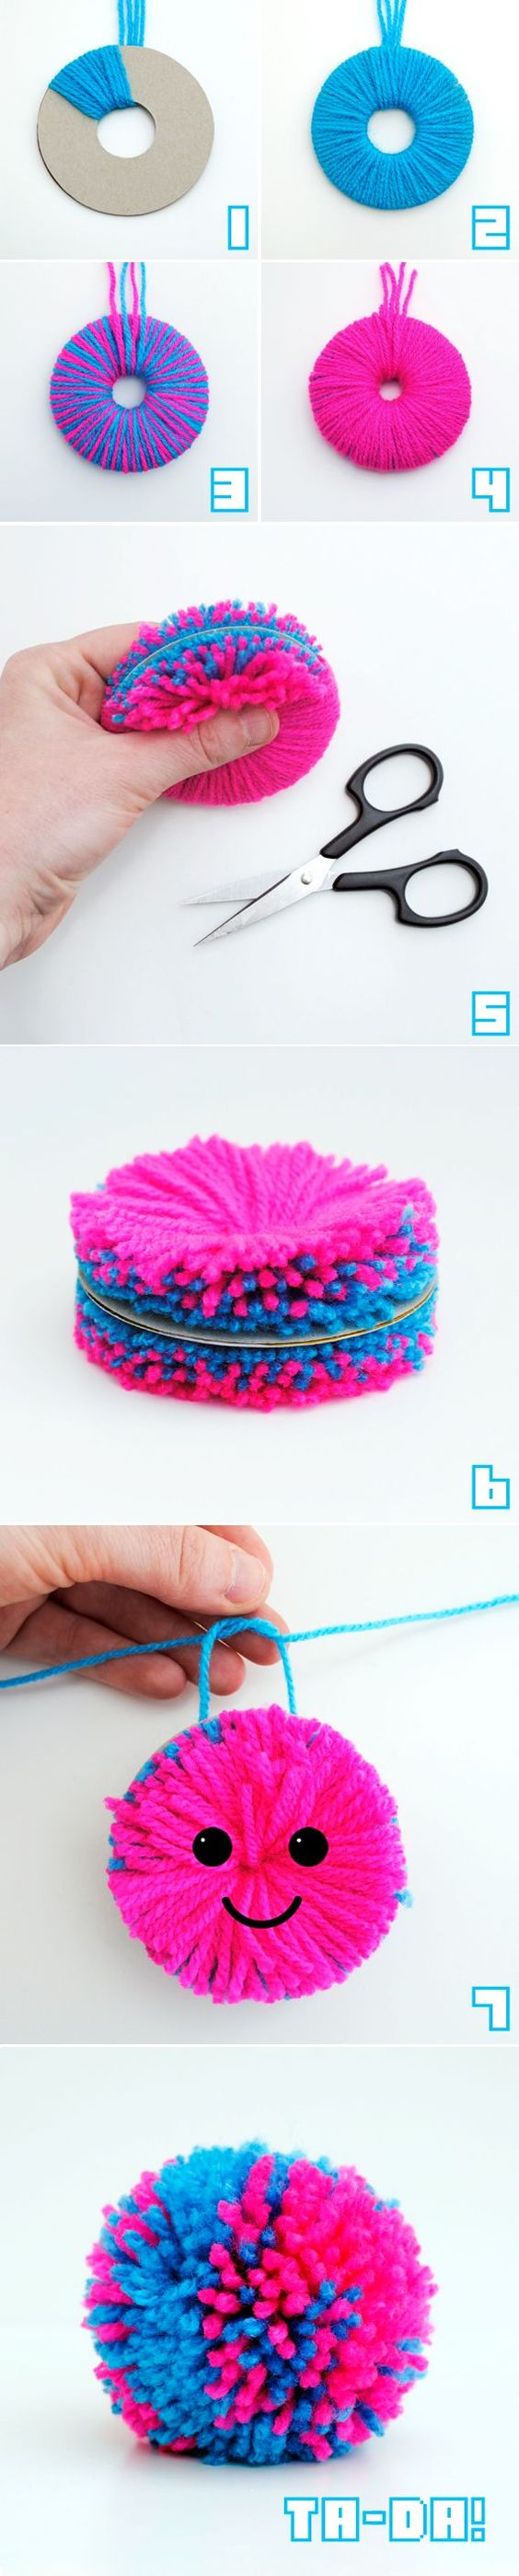 Pompoms - fab step by step photo instructions